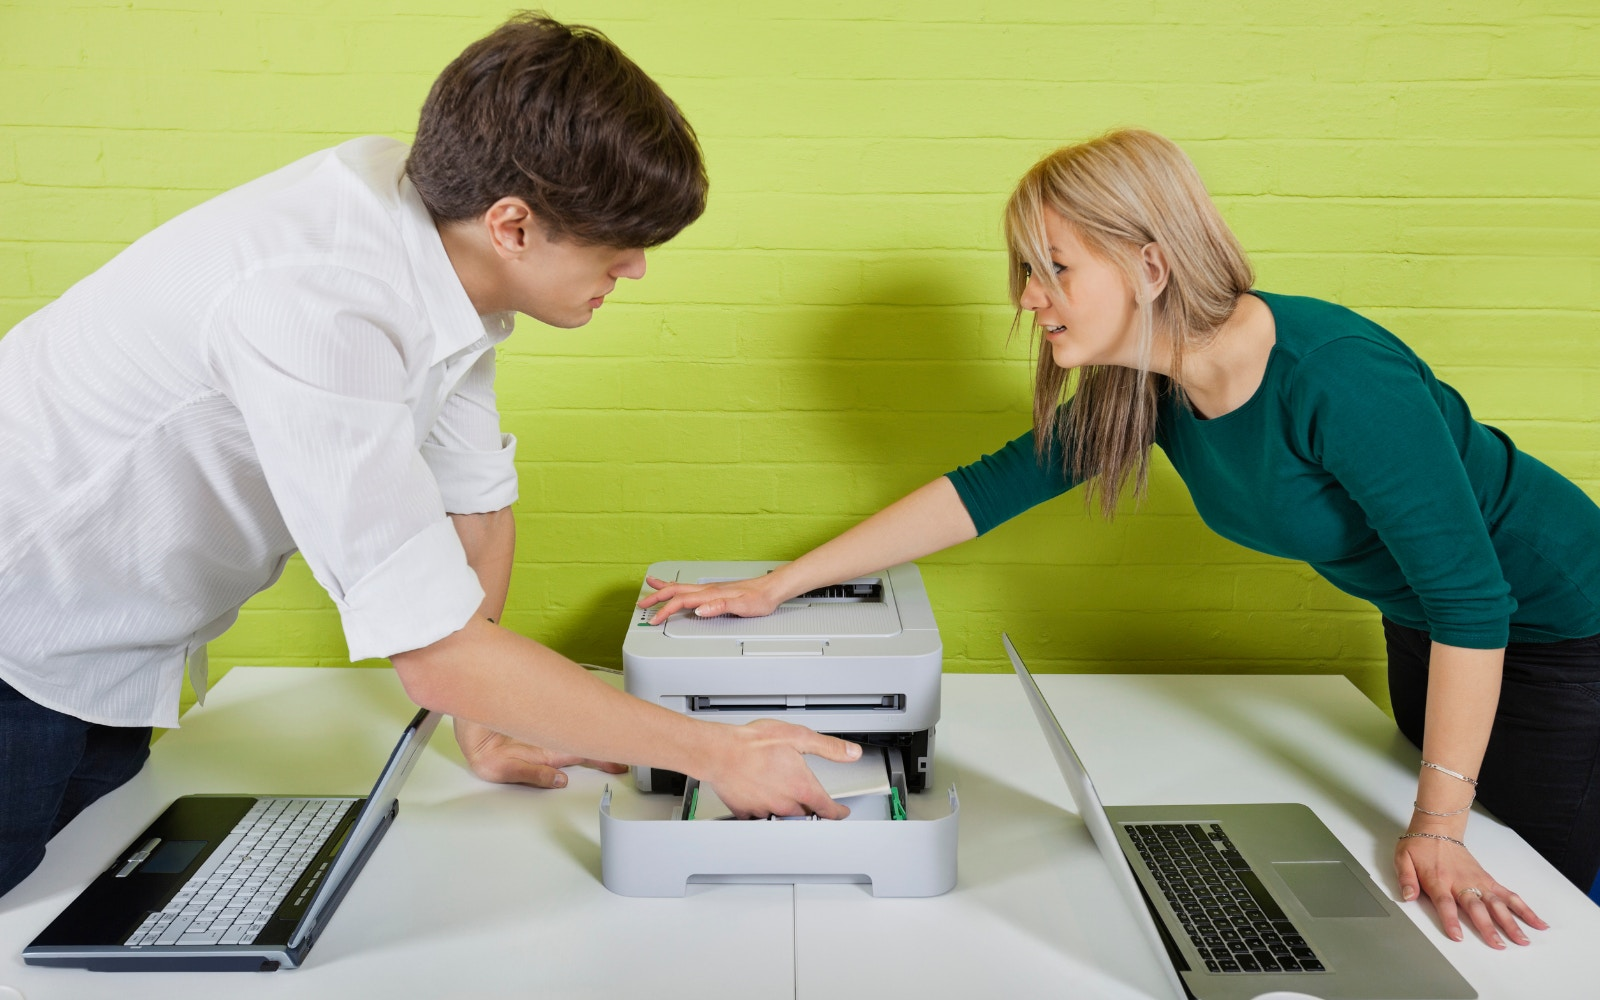 Quick and Easy Steps to Set Up Your Printer